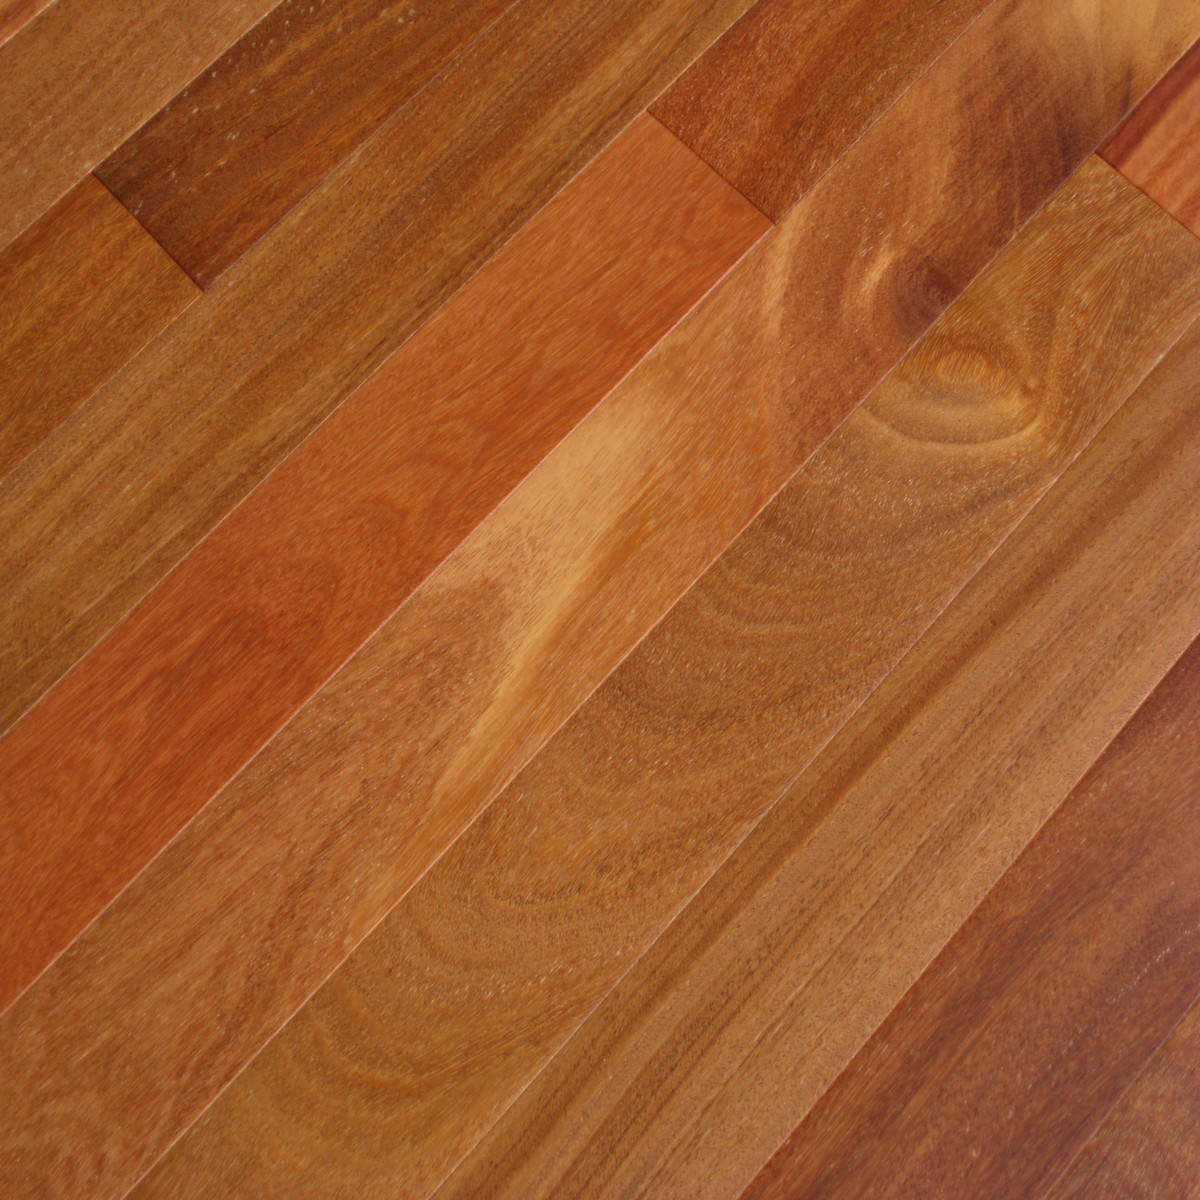 Cumaru dark brazilian teak hardwood flooring for Where to get hardwood floors